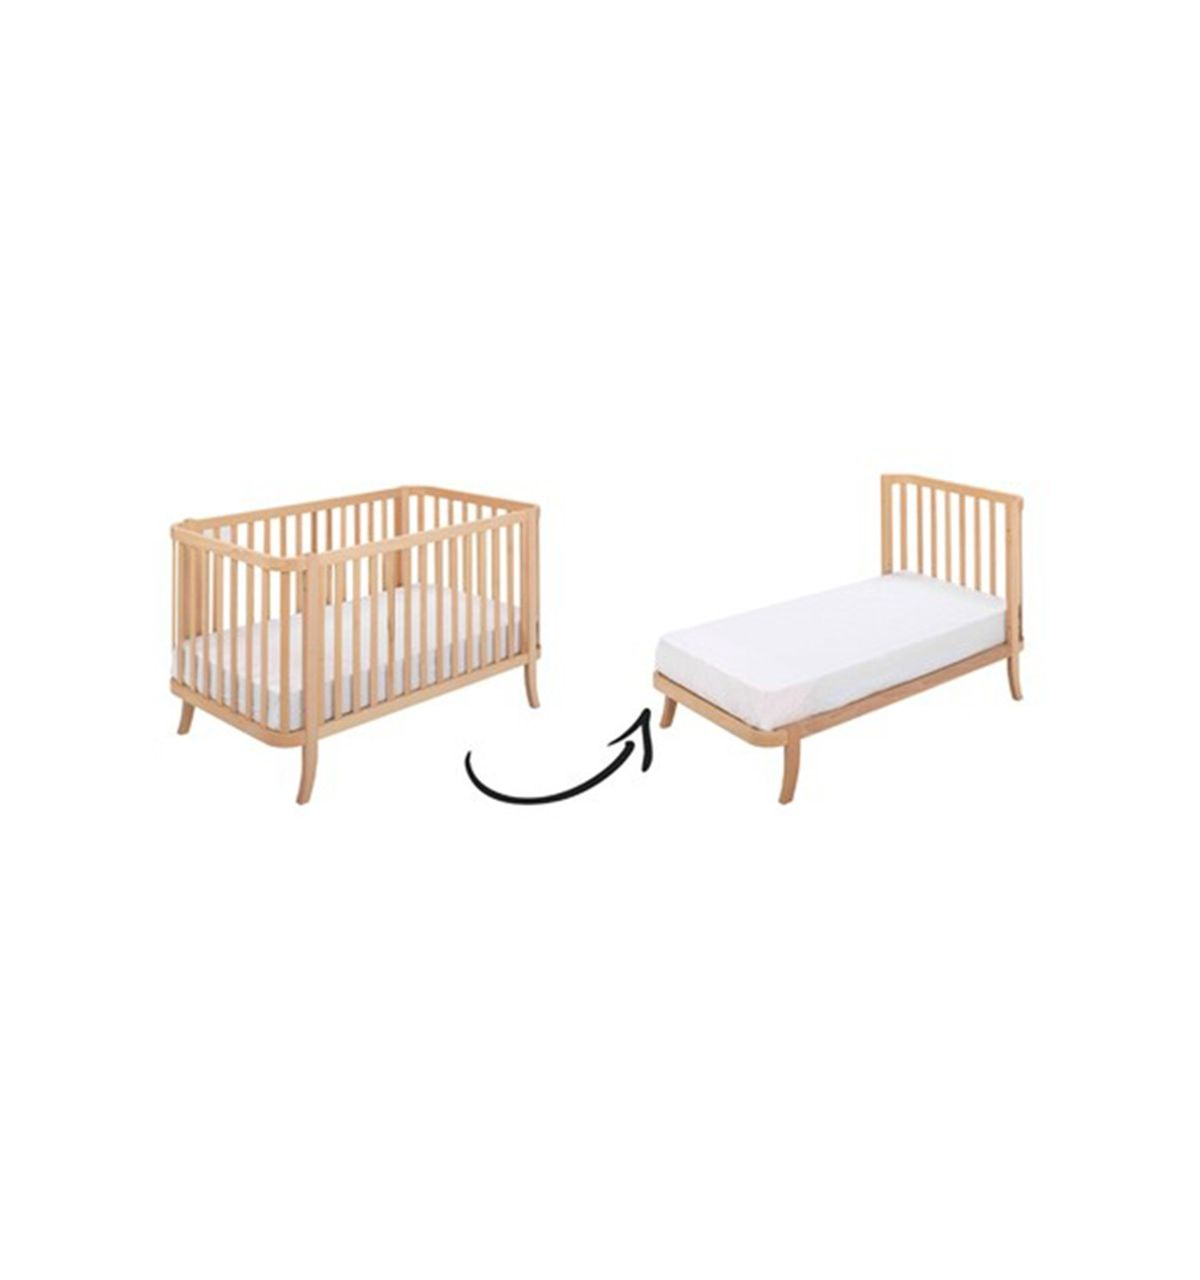 Hugs Factory Transformable Crib 2 In 1 Manhattan Natural